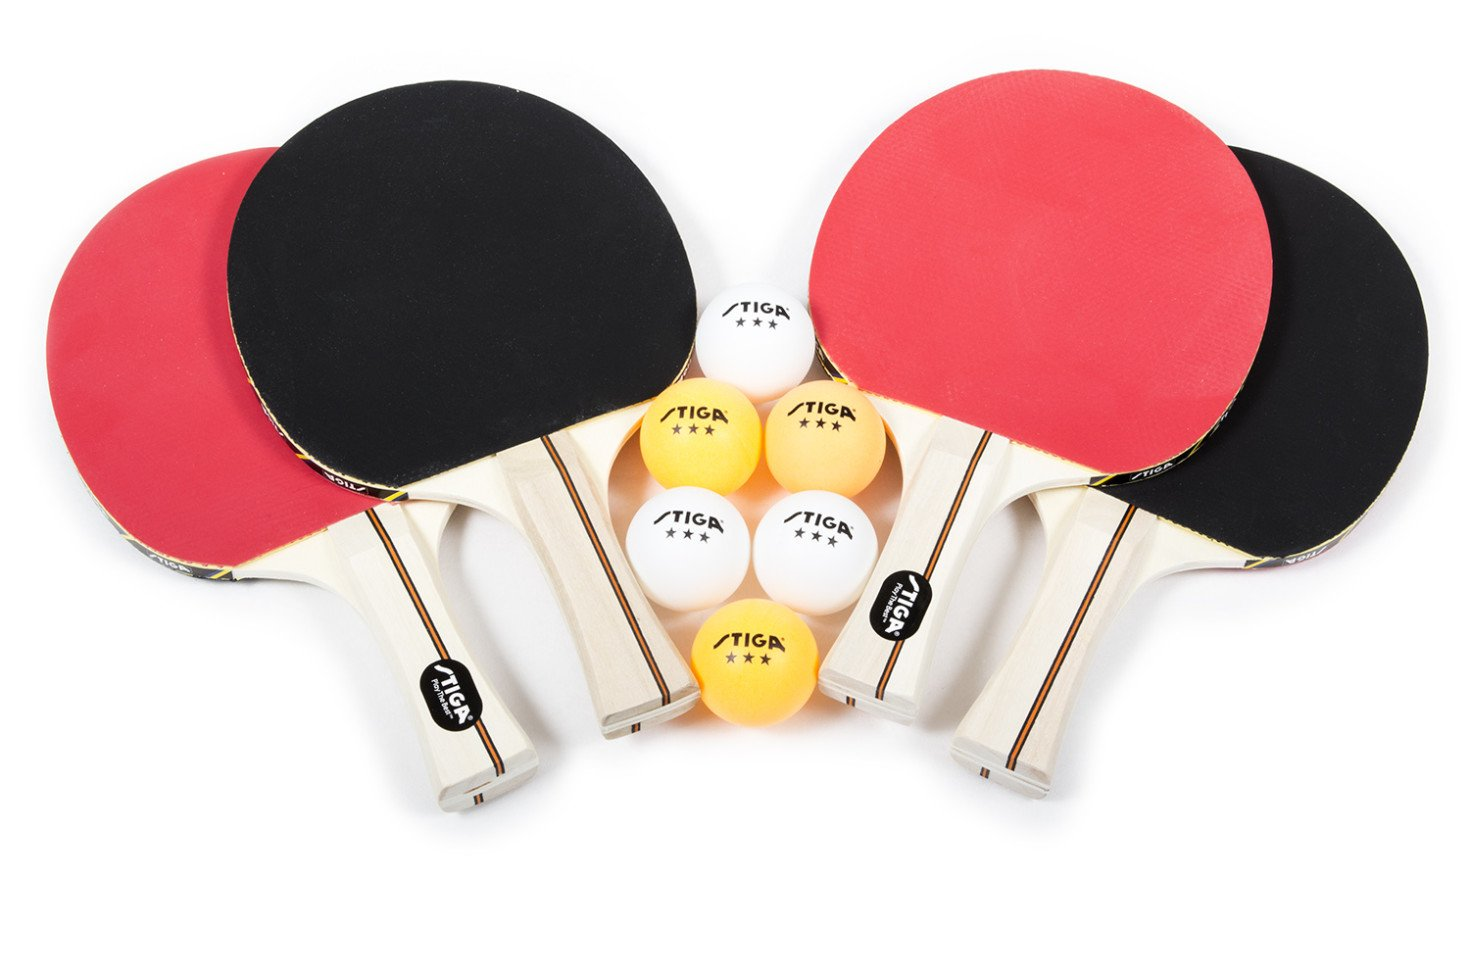 STIGA Performance 4-Player Table Tennis Racket Set with Inverted Rubber for Increased Ball Control and Added Spin by STIGA (Image #1)